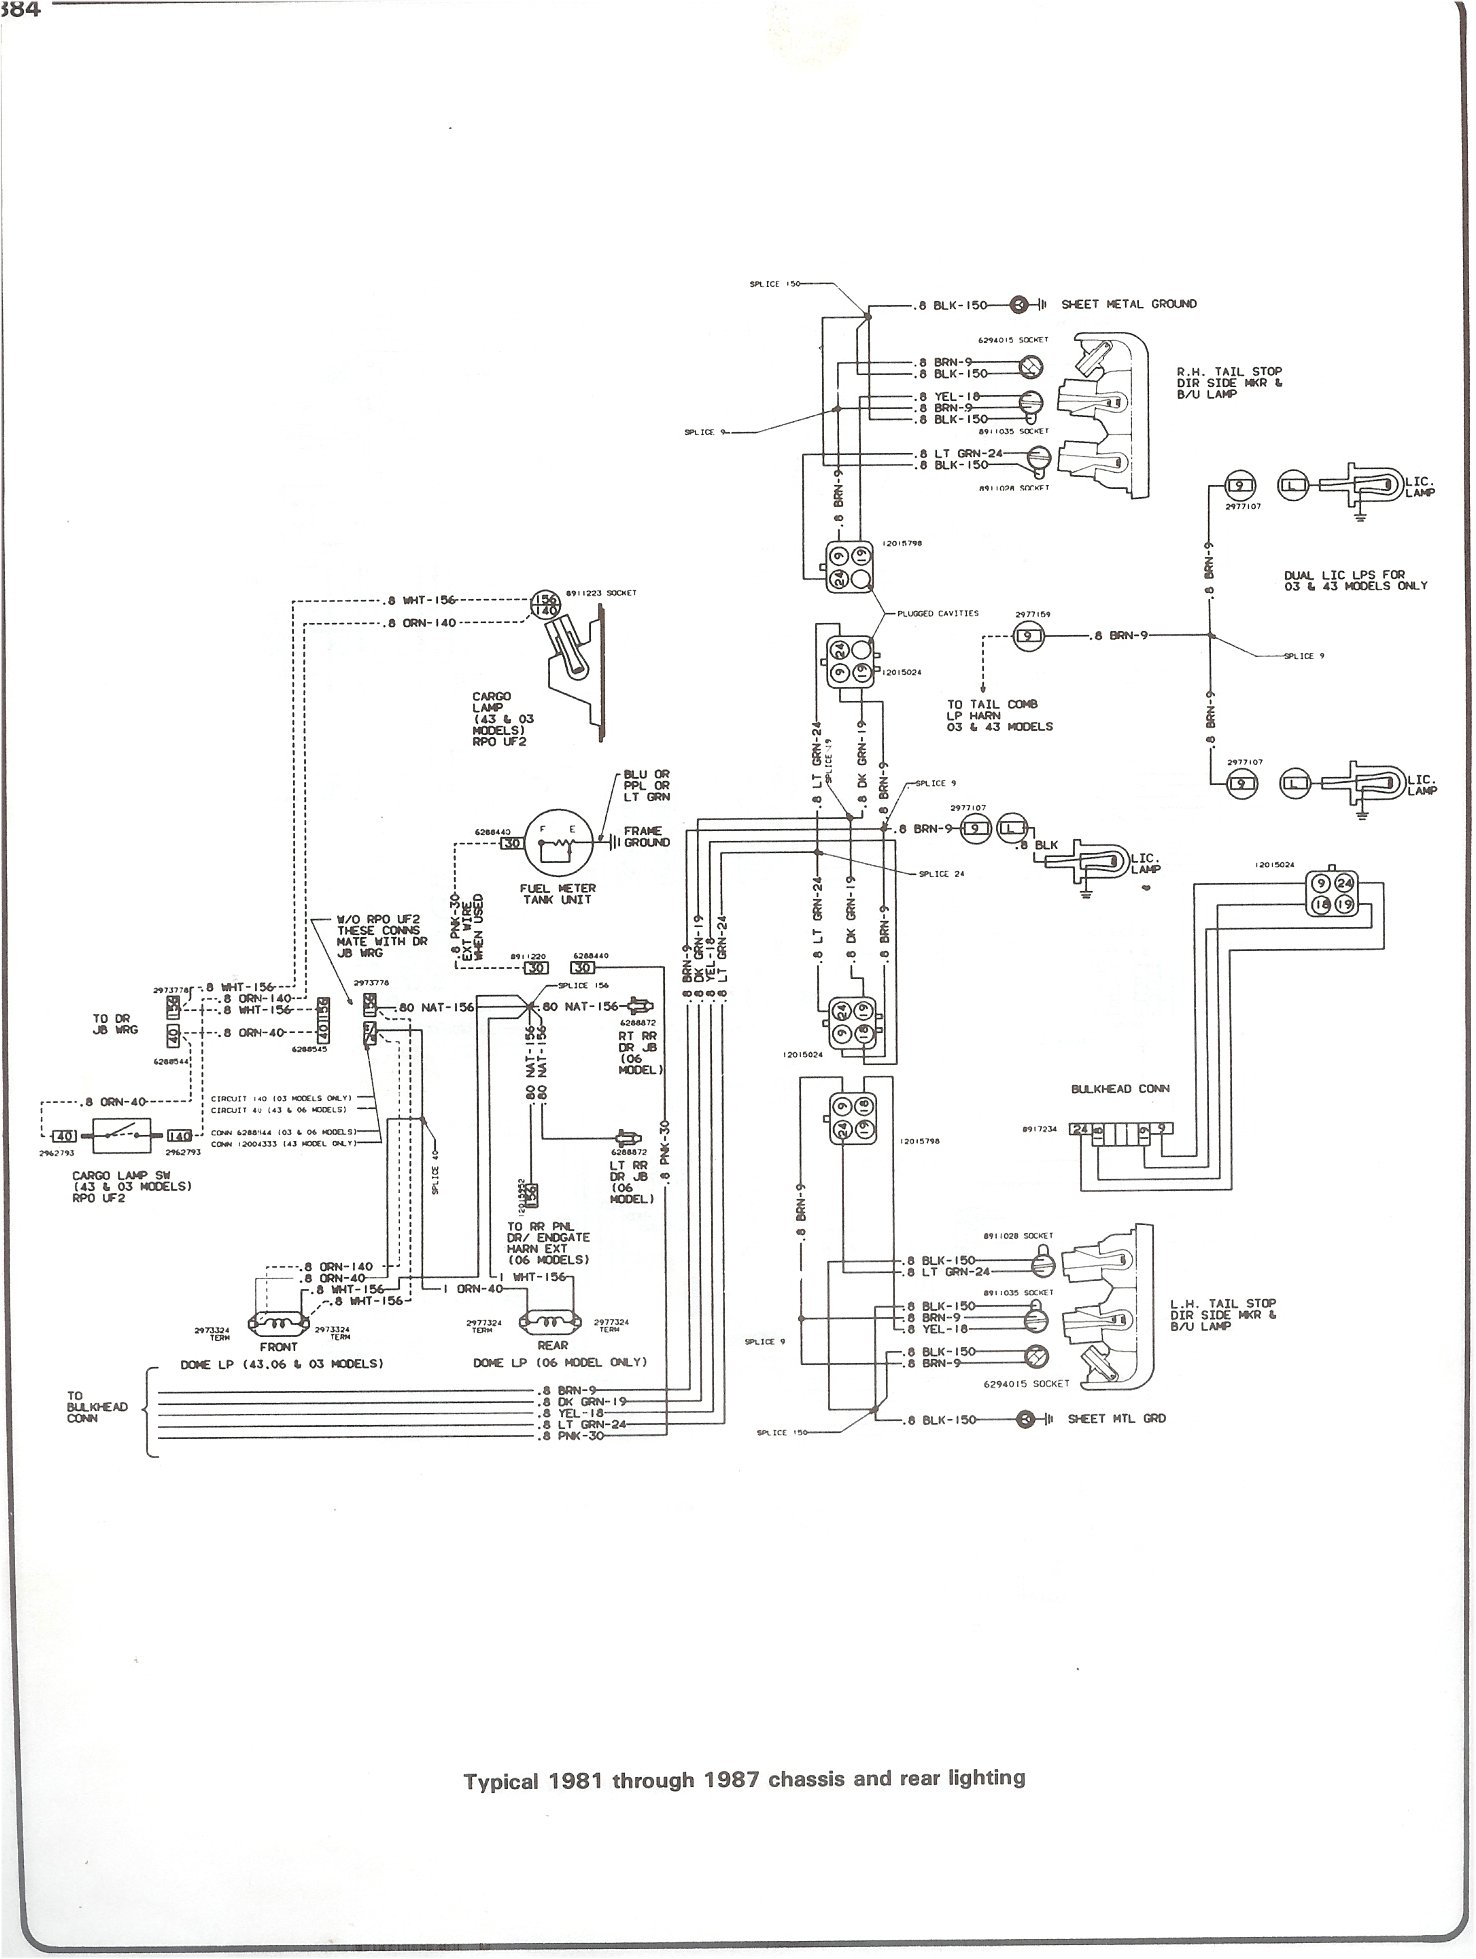 81 87_chass_rr_light complete 73 87 wiring diagrams 1996 C1500 Wiring Diagram at n-0.co